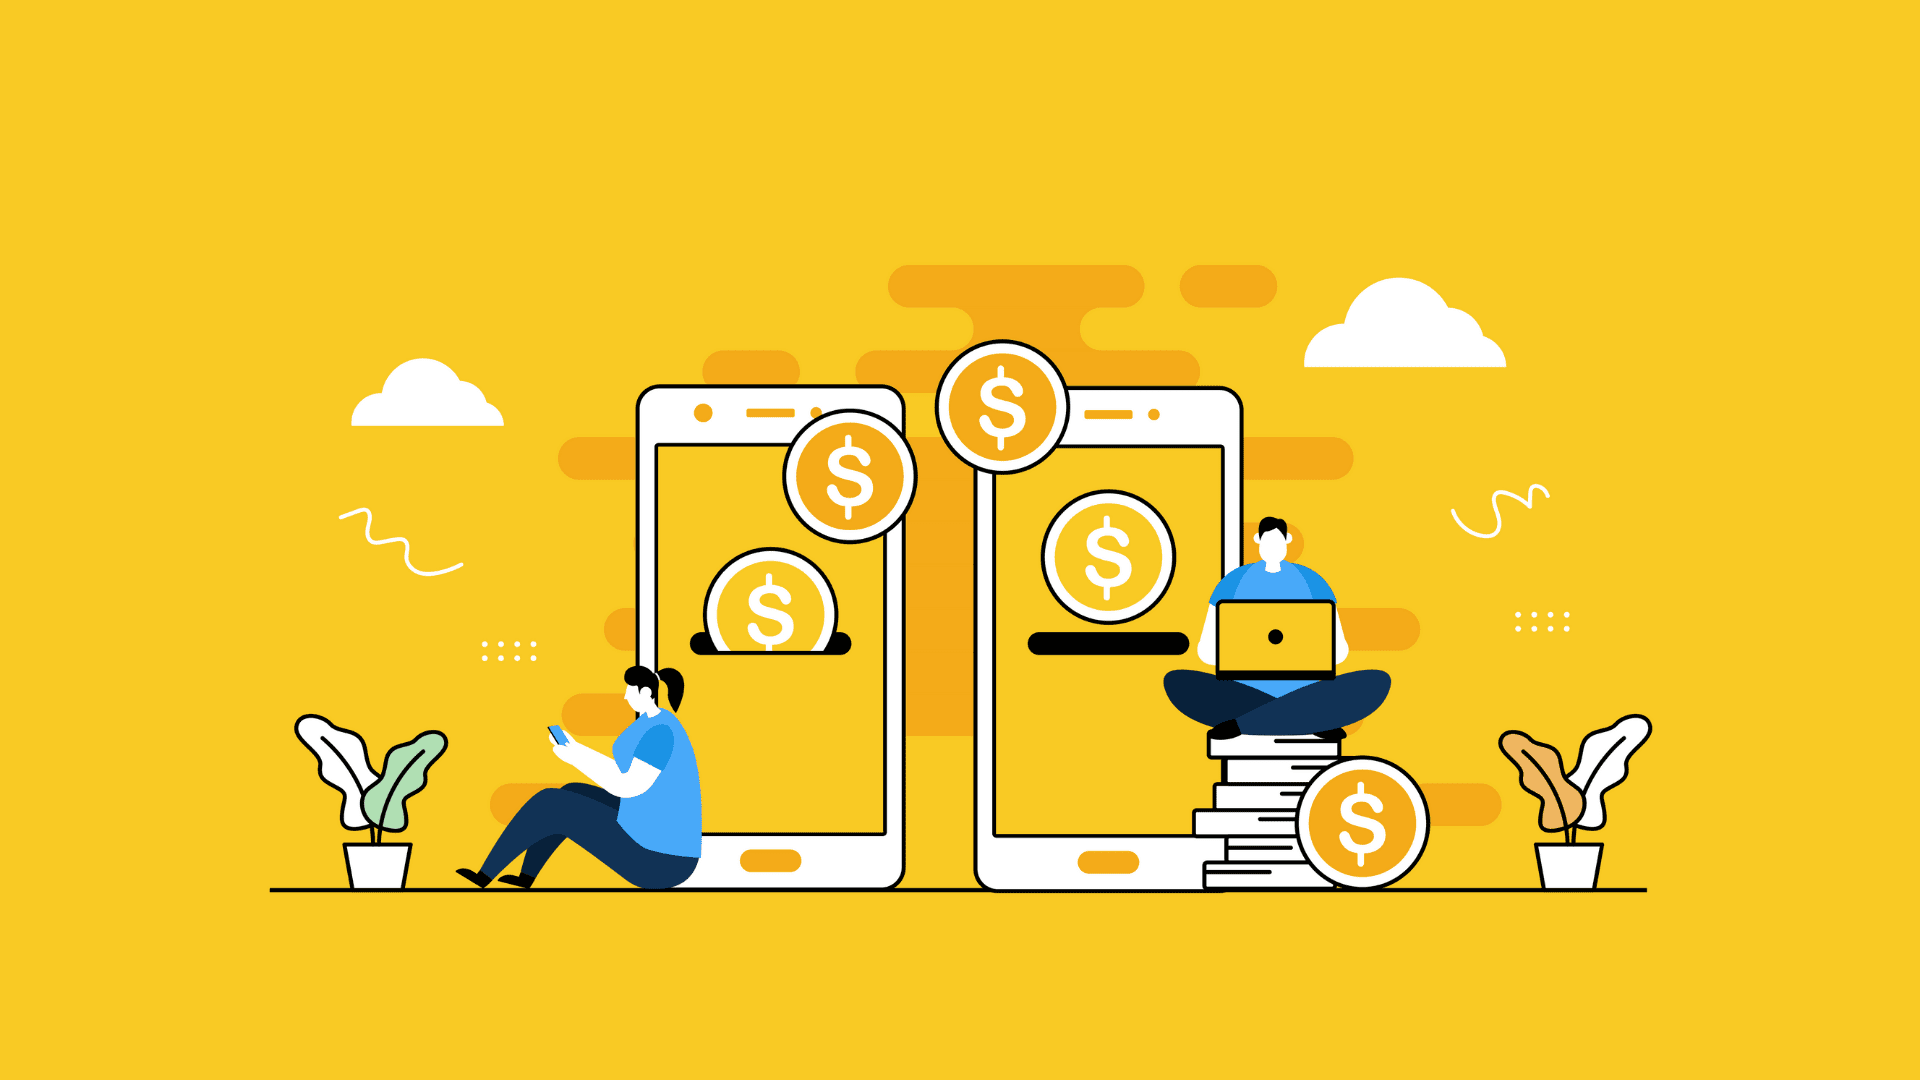 making payment on mobile app